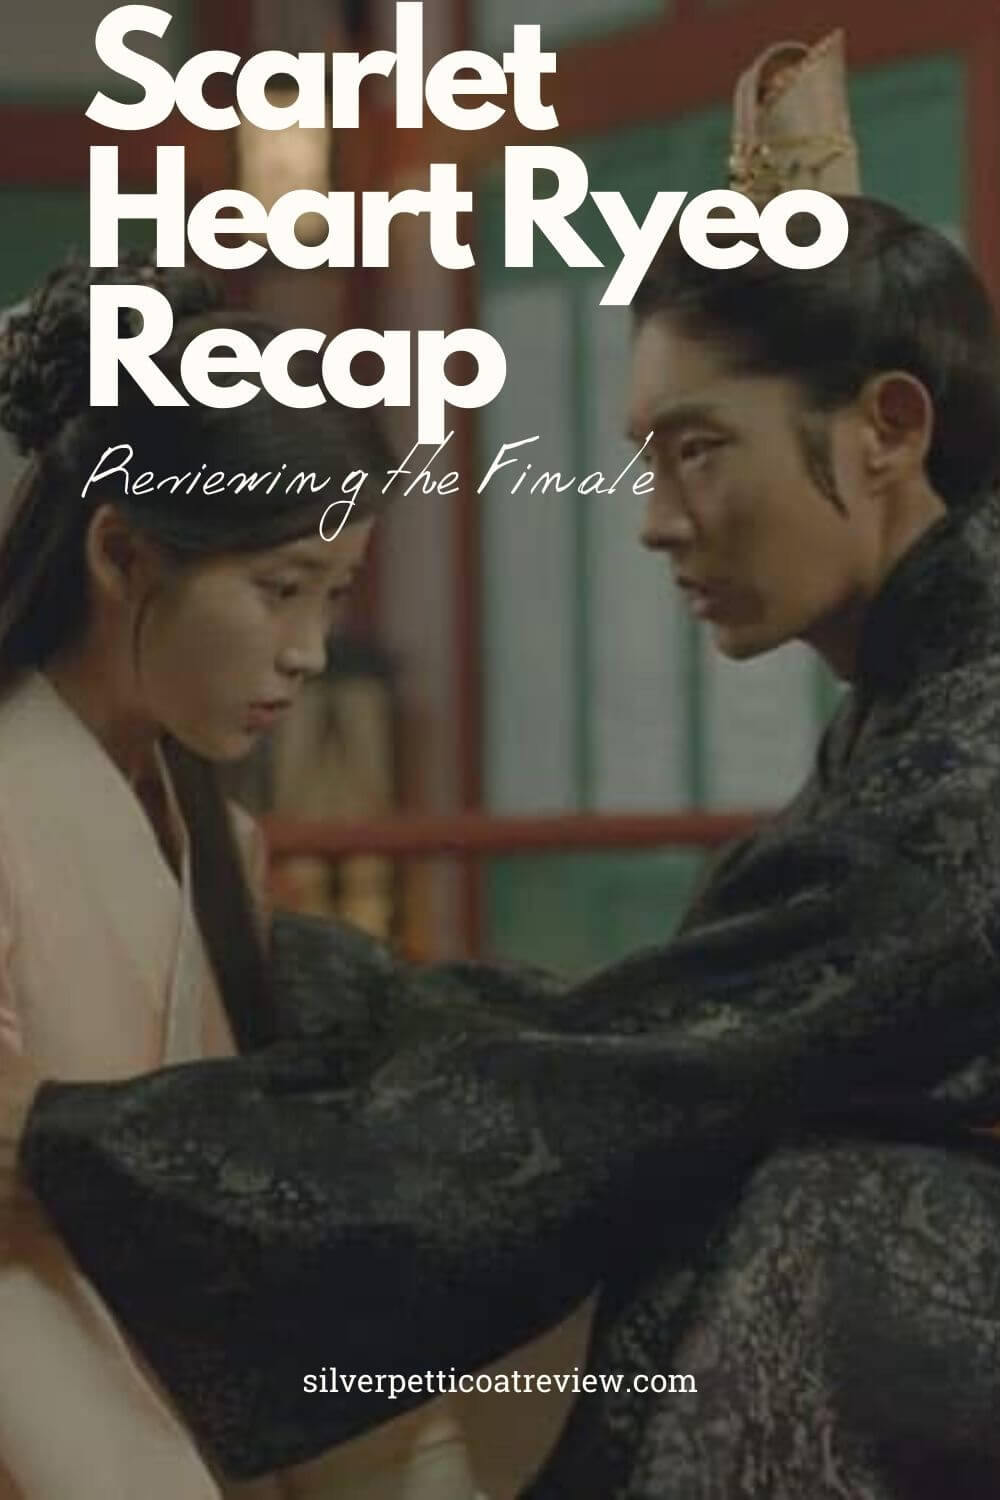 Scarlet Heart Ryeo Recap (Reviewing the Finale) Pinterest image